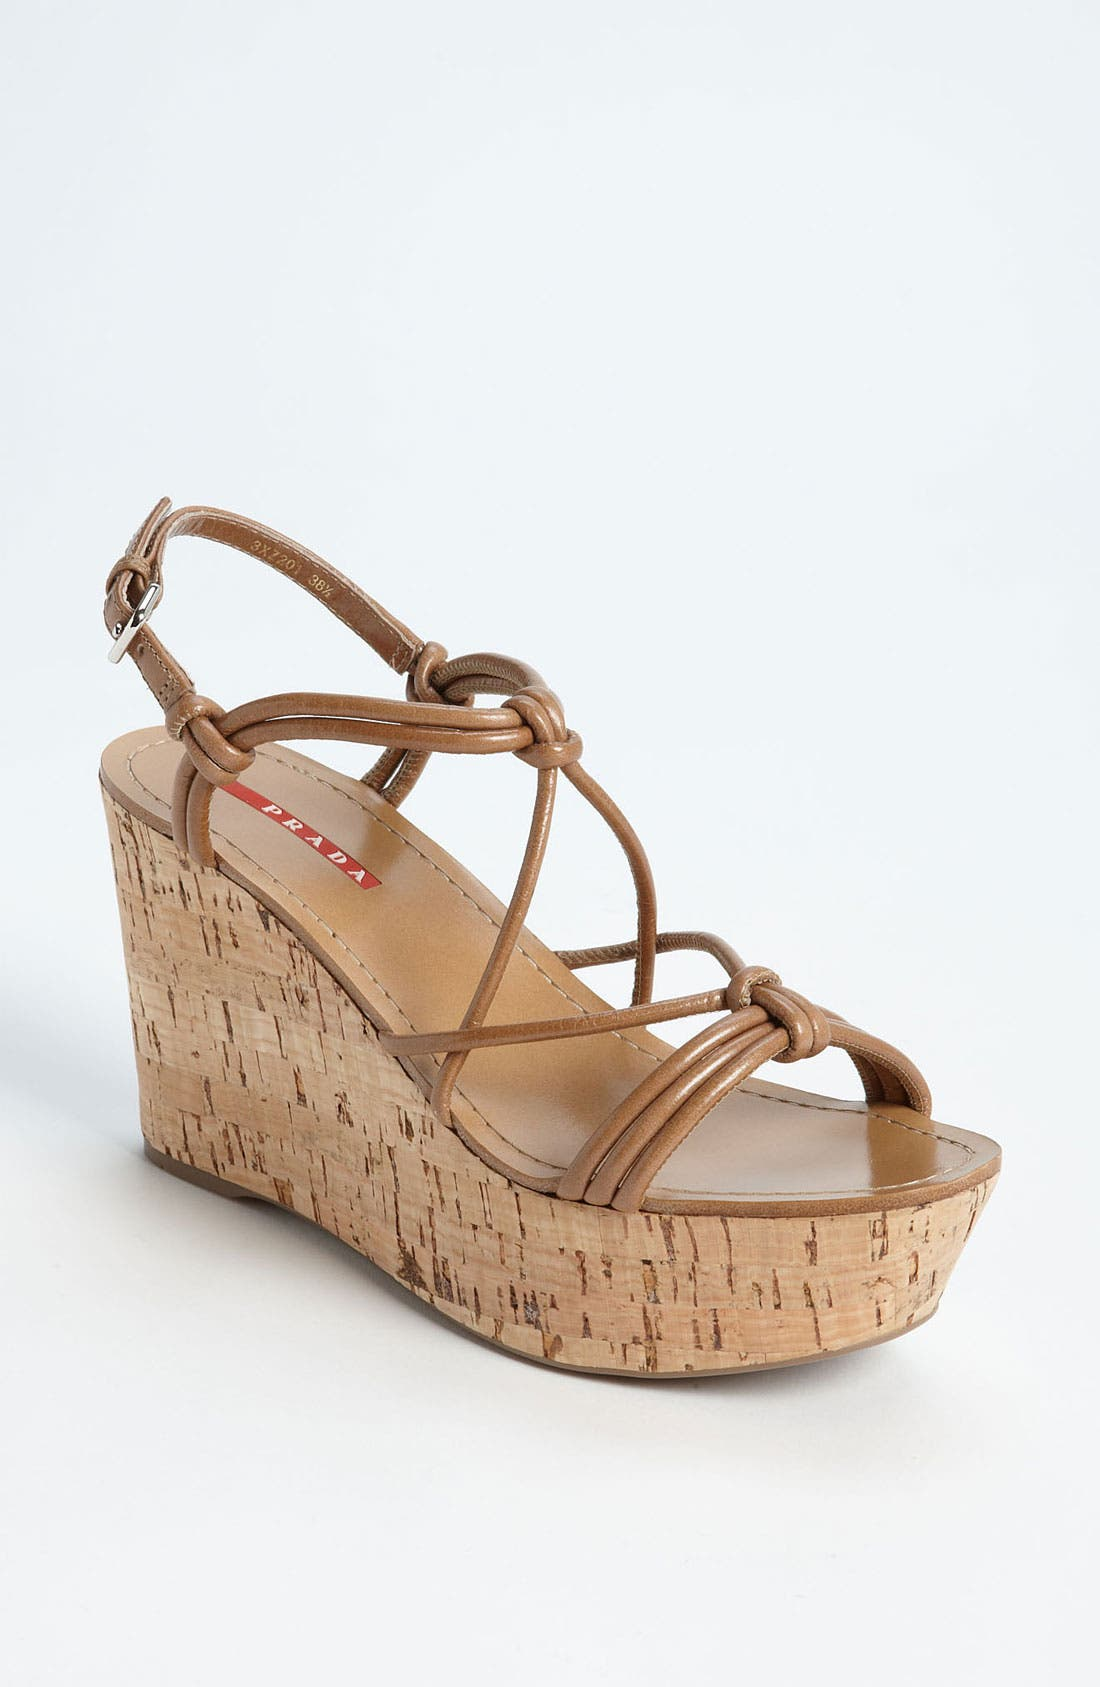 Main Image - Prada Cork Wedge Sandal